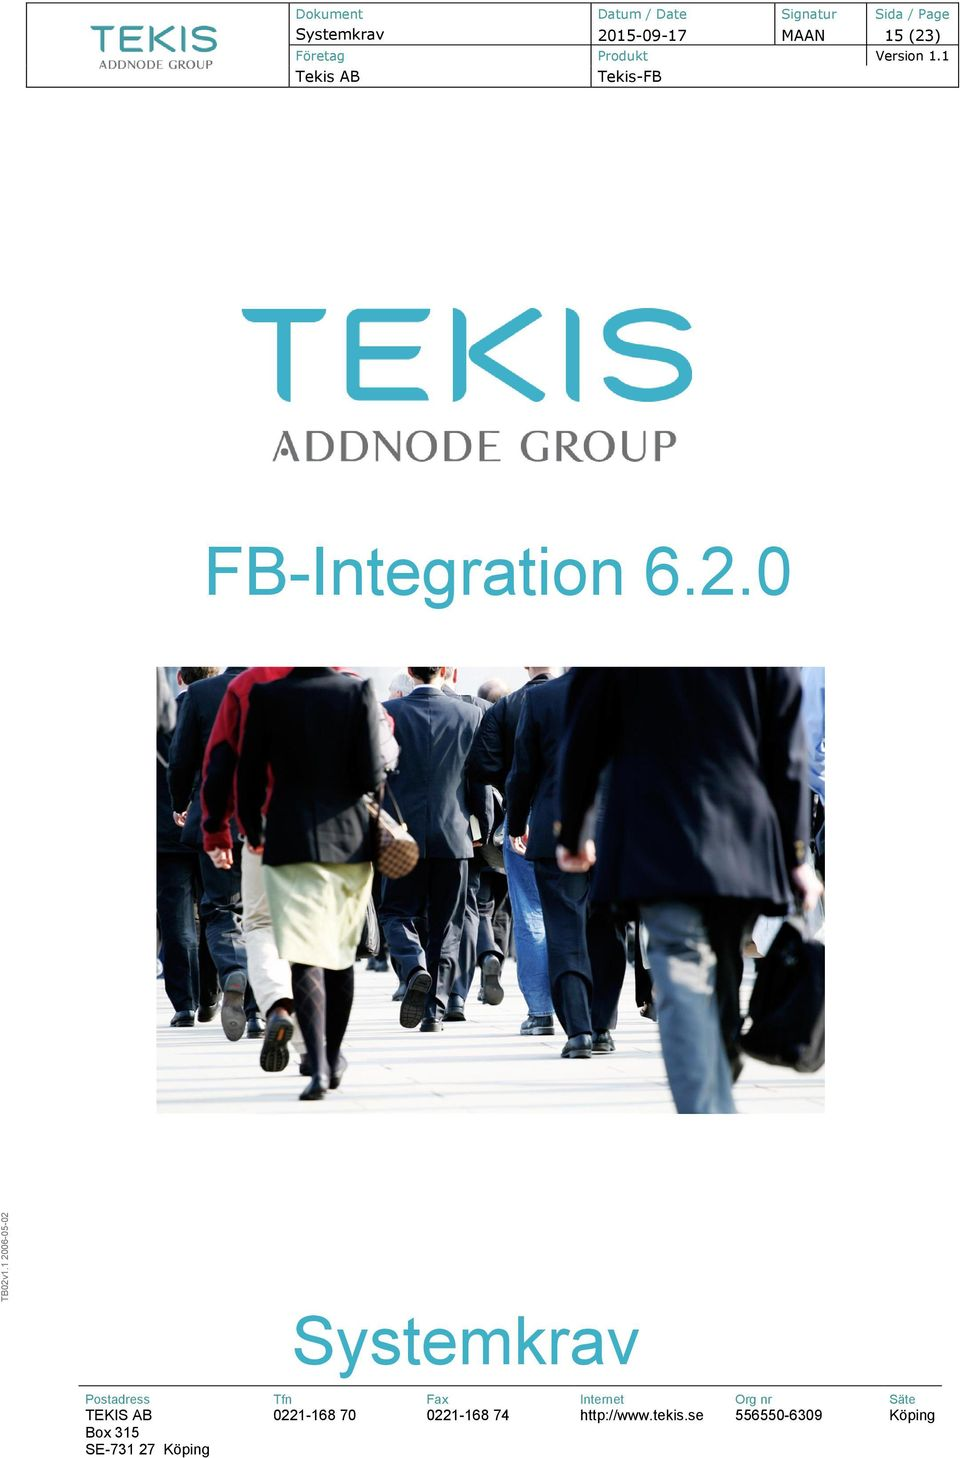 (2) FB-Integration 6.